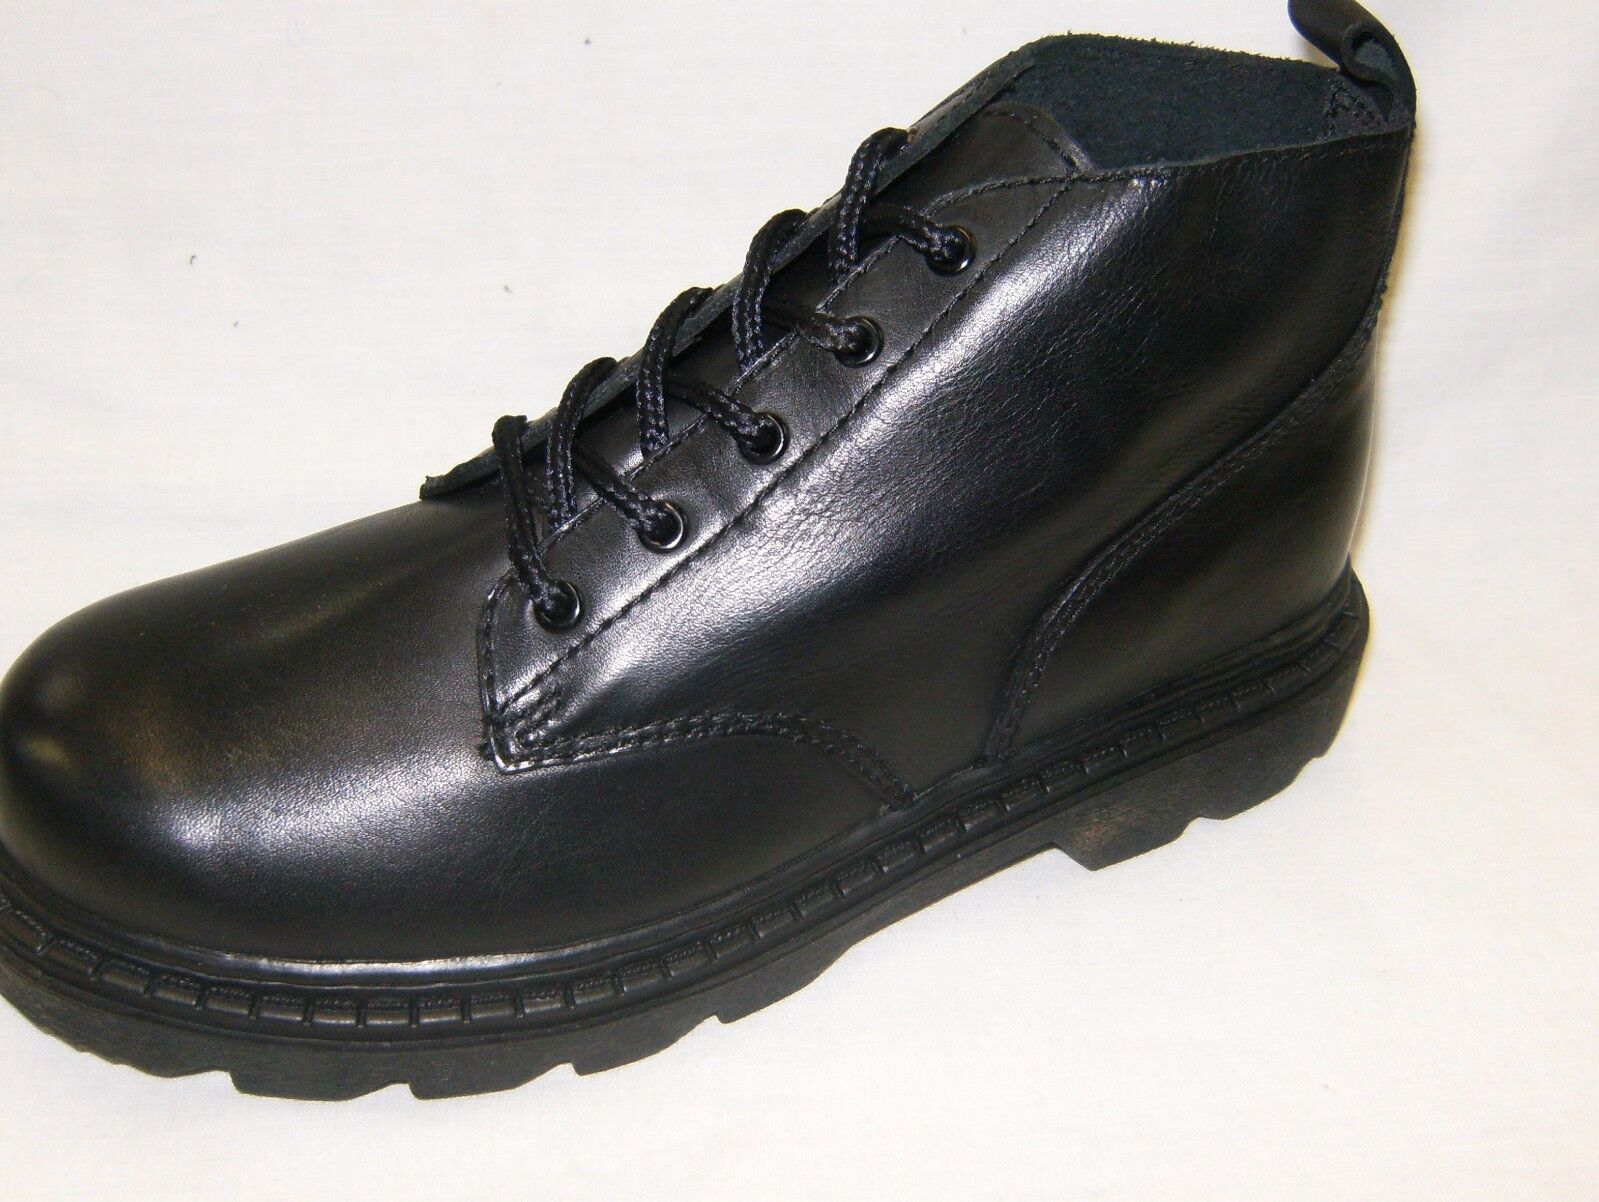 CHUKKA Boots MADE BY ALTAMA LEATHER MEN SIZE 5 LADIES SIZE 6.5-7